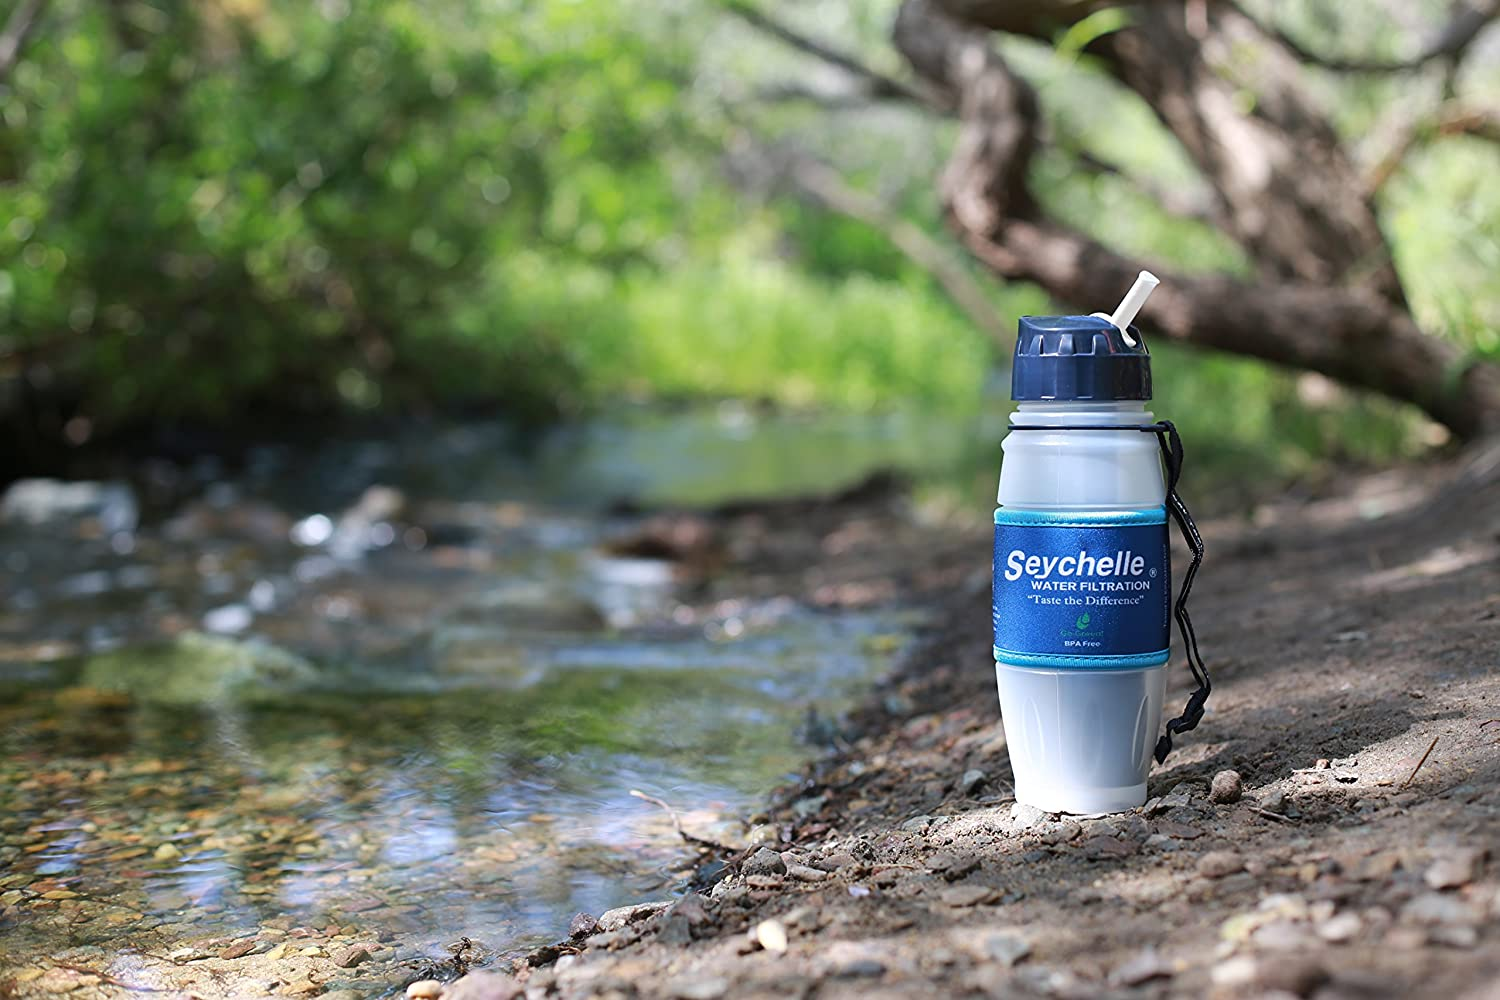 Seychelle 26-ounce High-End Portable Filtering Water Bottle